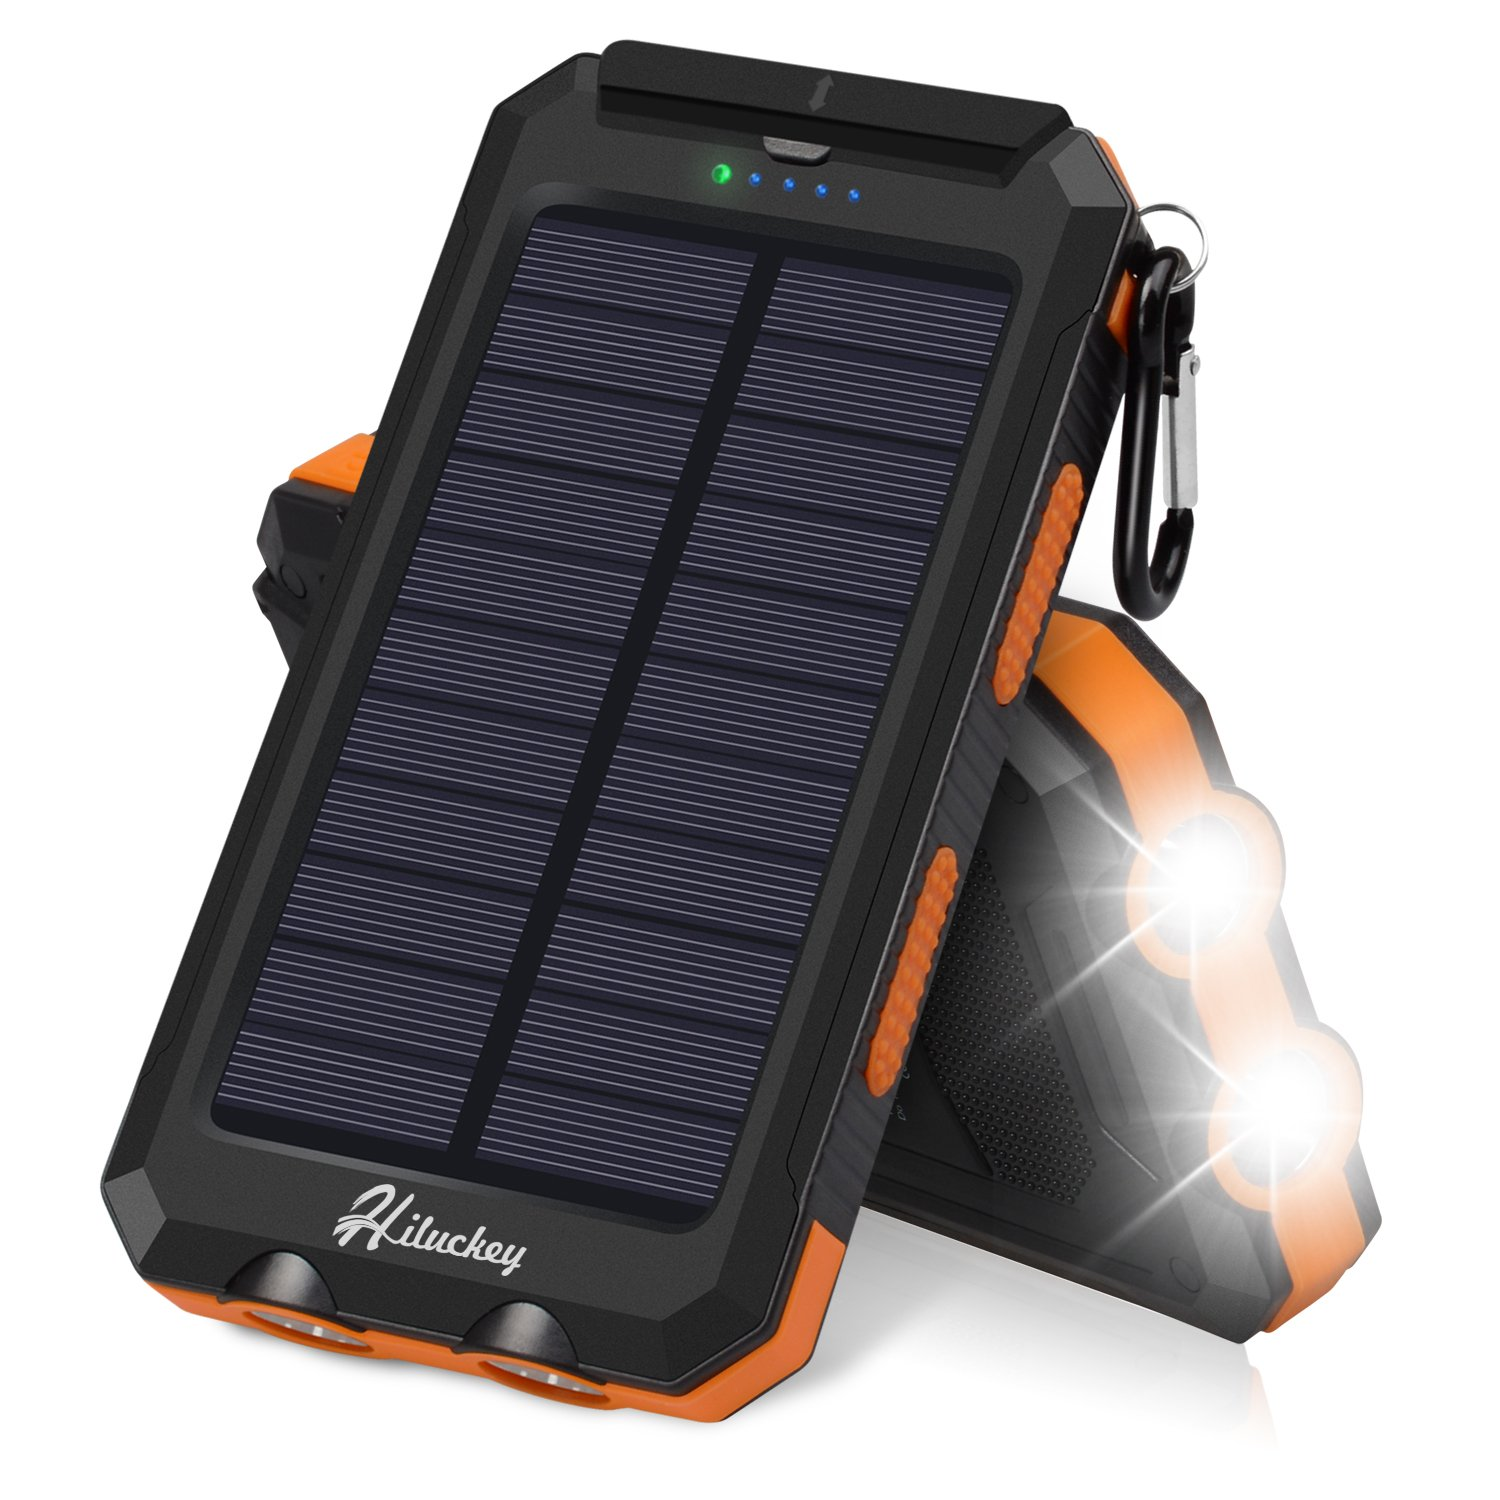 Solar Charger, Hiluckey 10000mAh Waterproof Solar Power Bank Dual USB Portable External Battery Pack Compatible iPhone, Samsung Galaxy More by Hiluckey